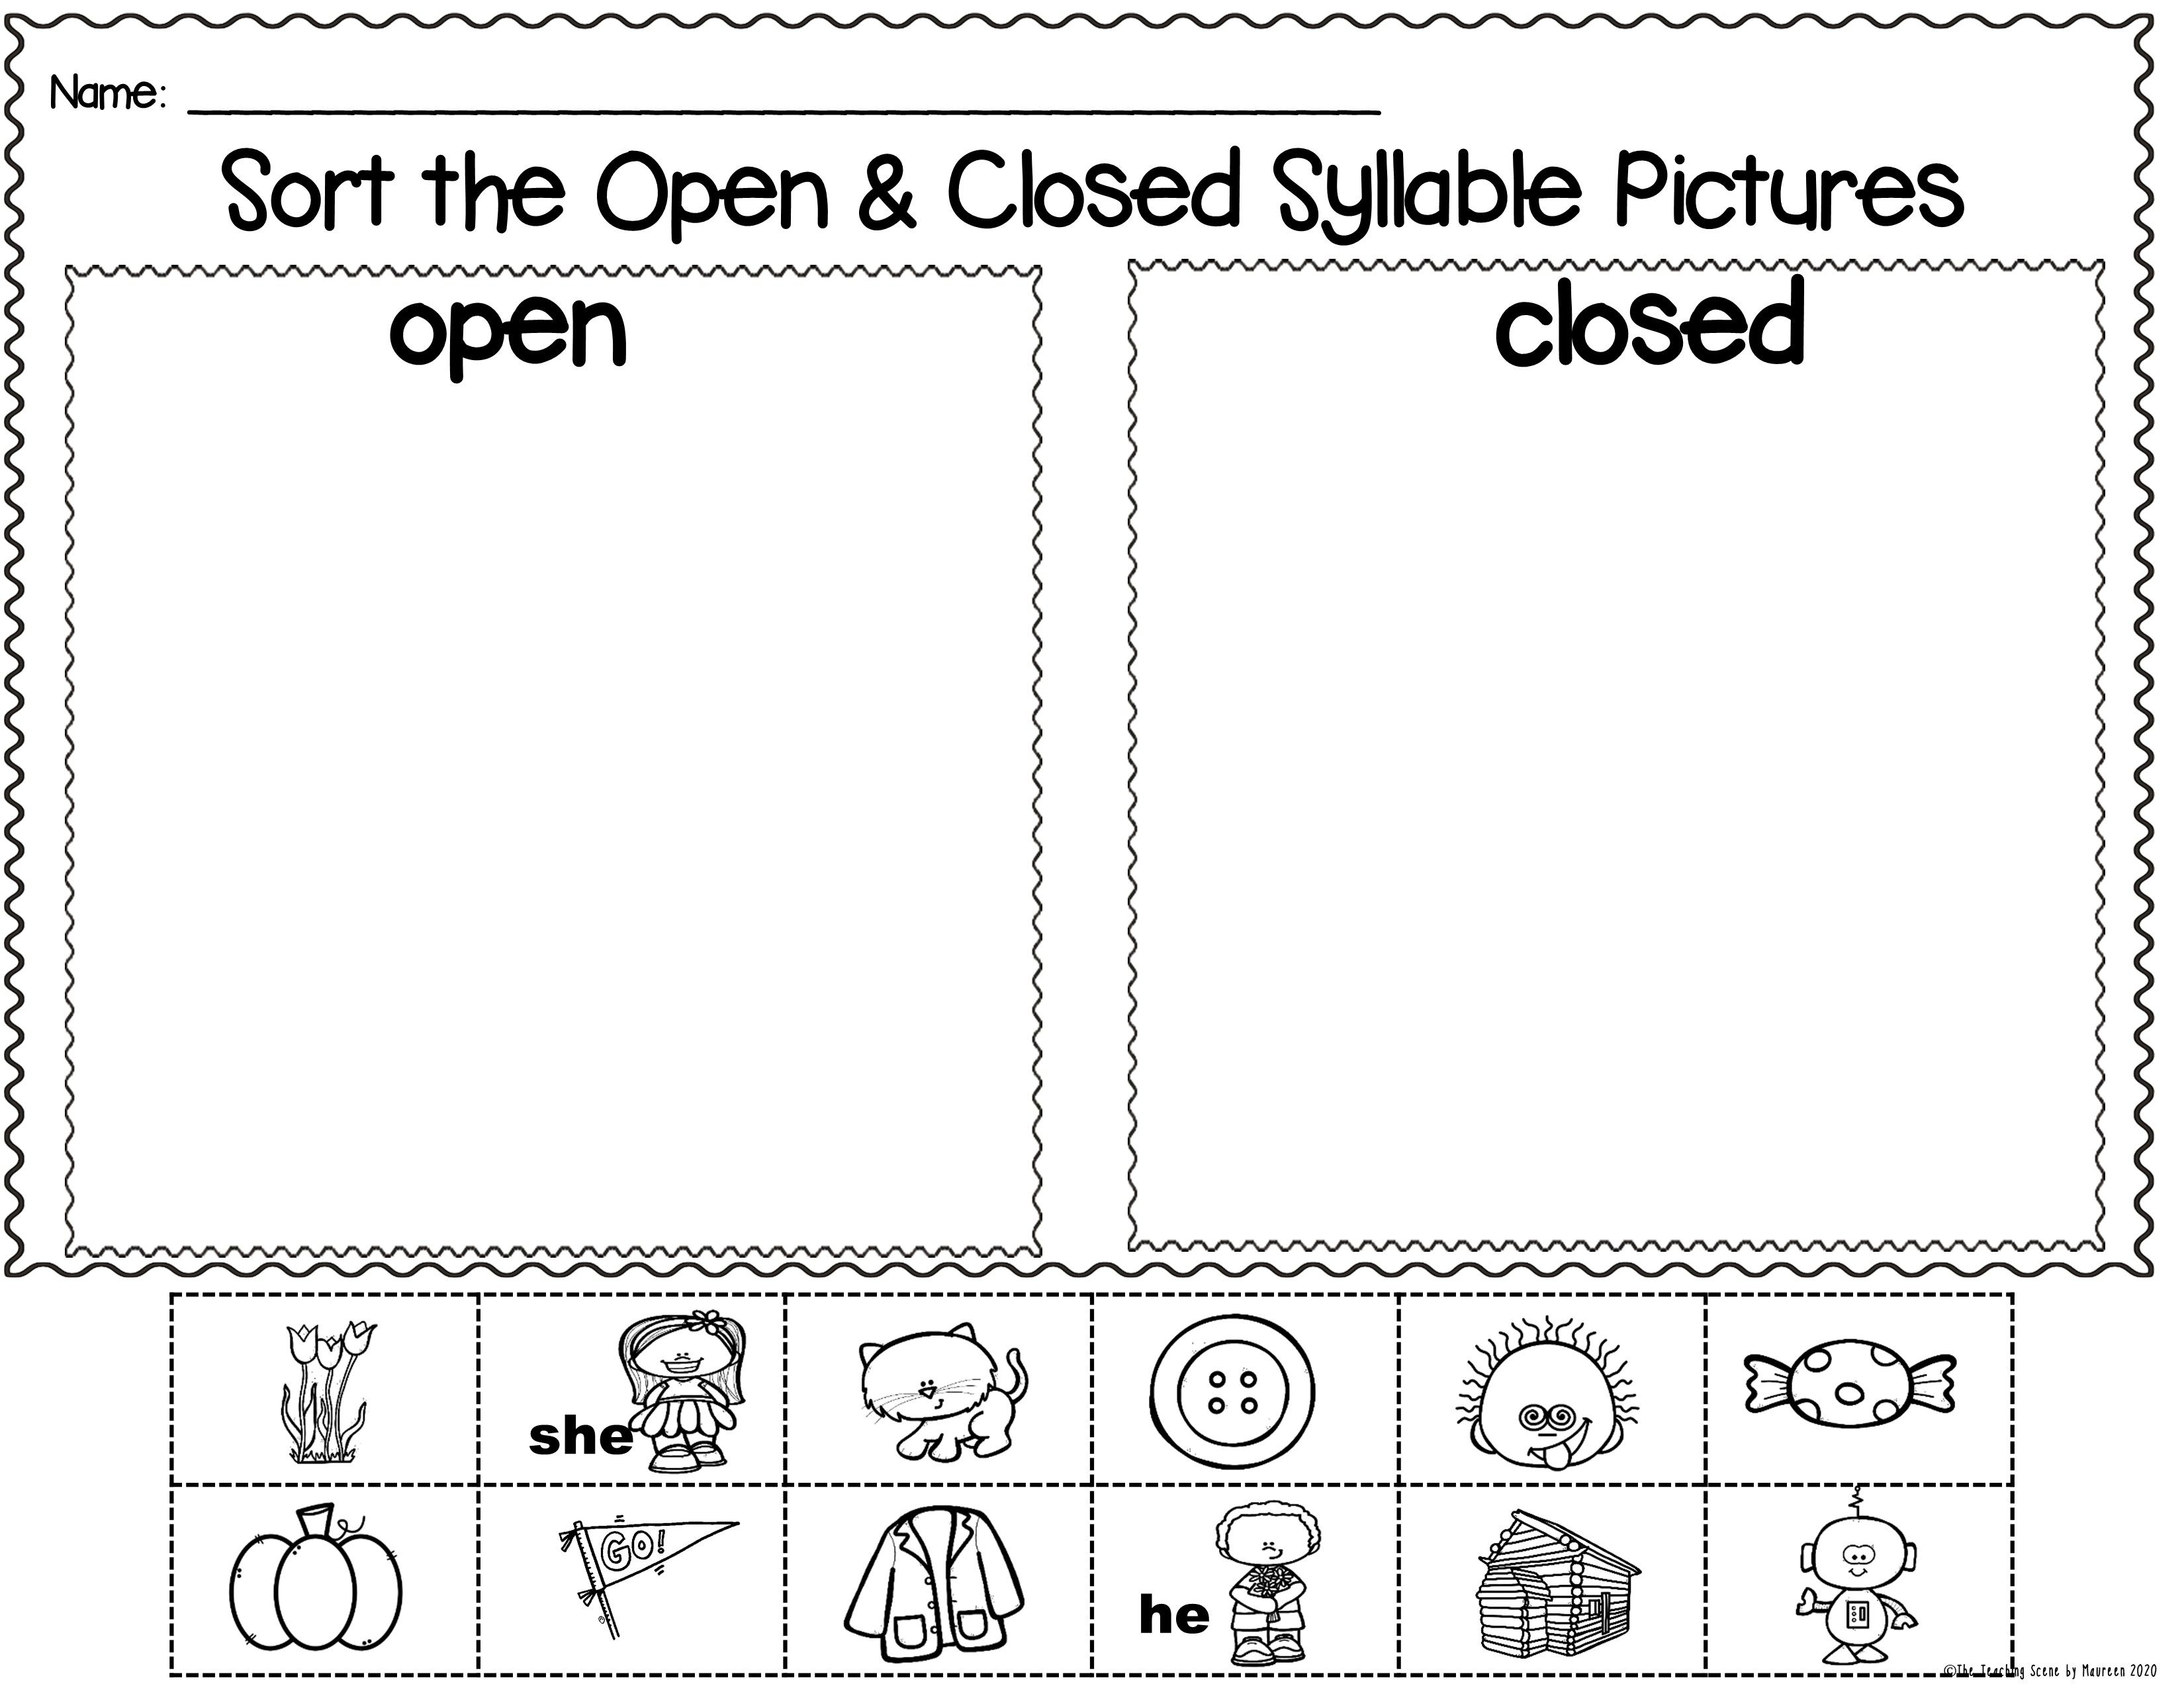 Open Closed Syllables Packet Picture Word Cards Sorting Mats Worksheets Closed Syllables Syllable Worksheet Multisyllable Words Open closed syllable worksheets